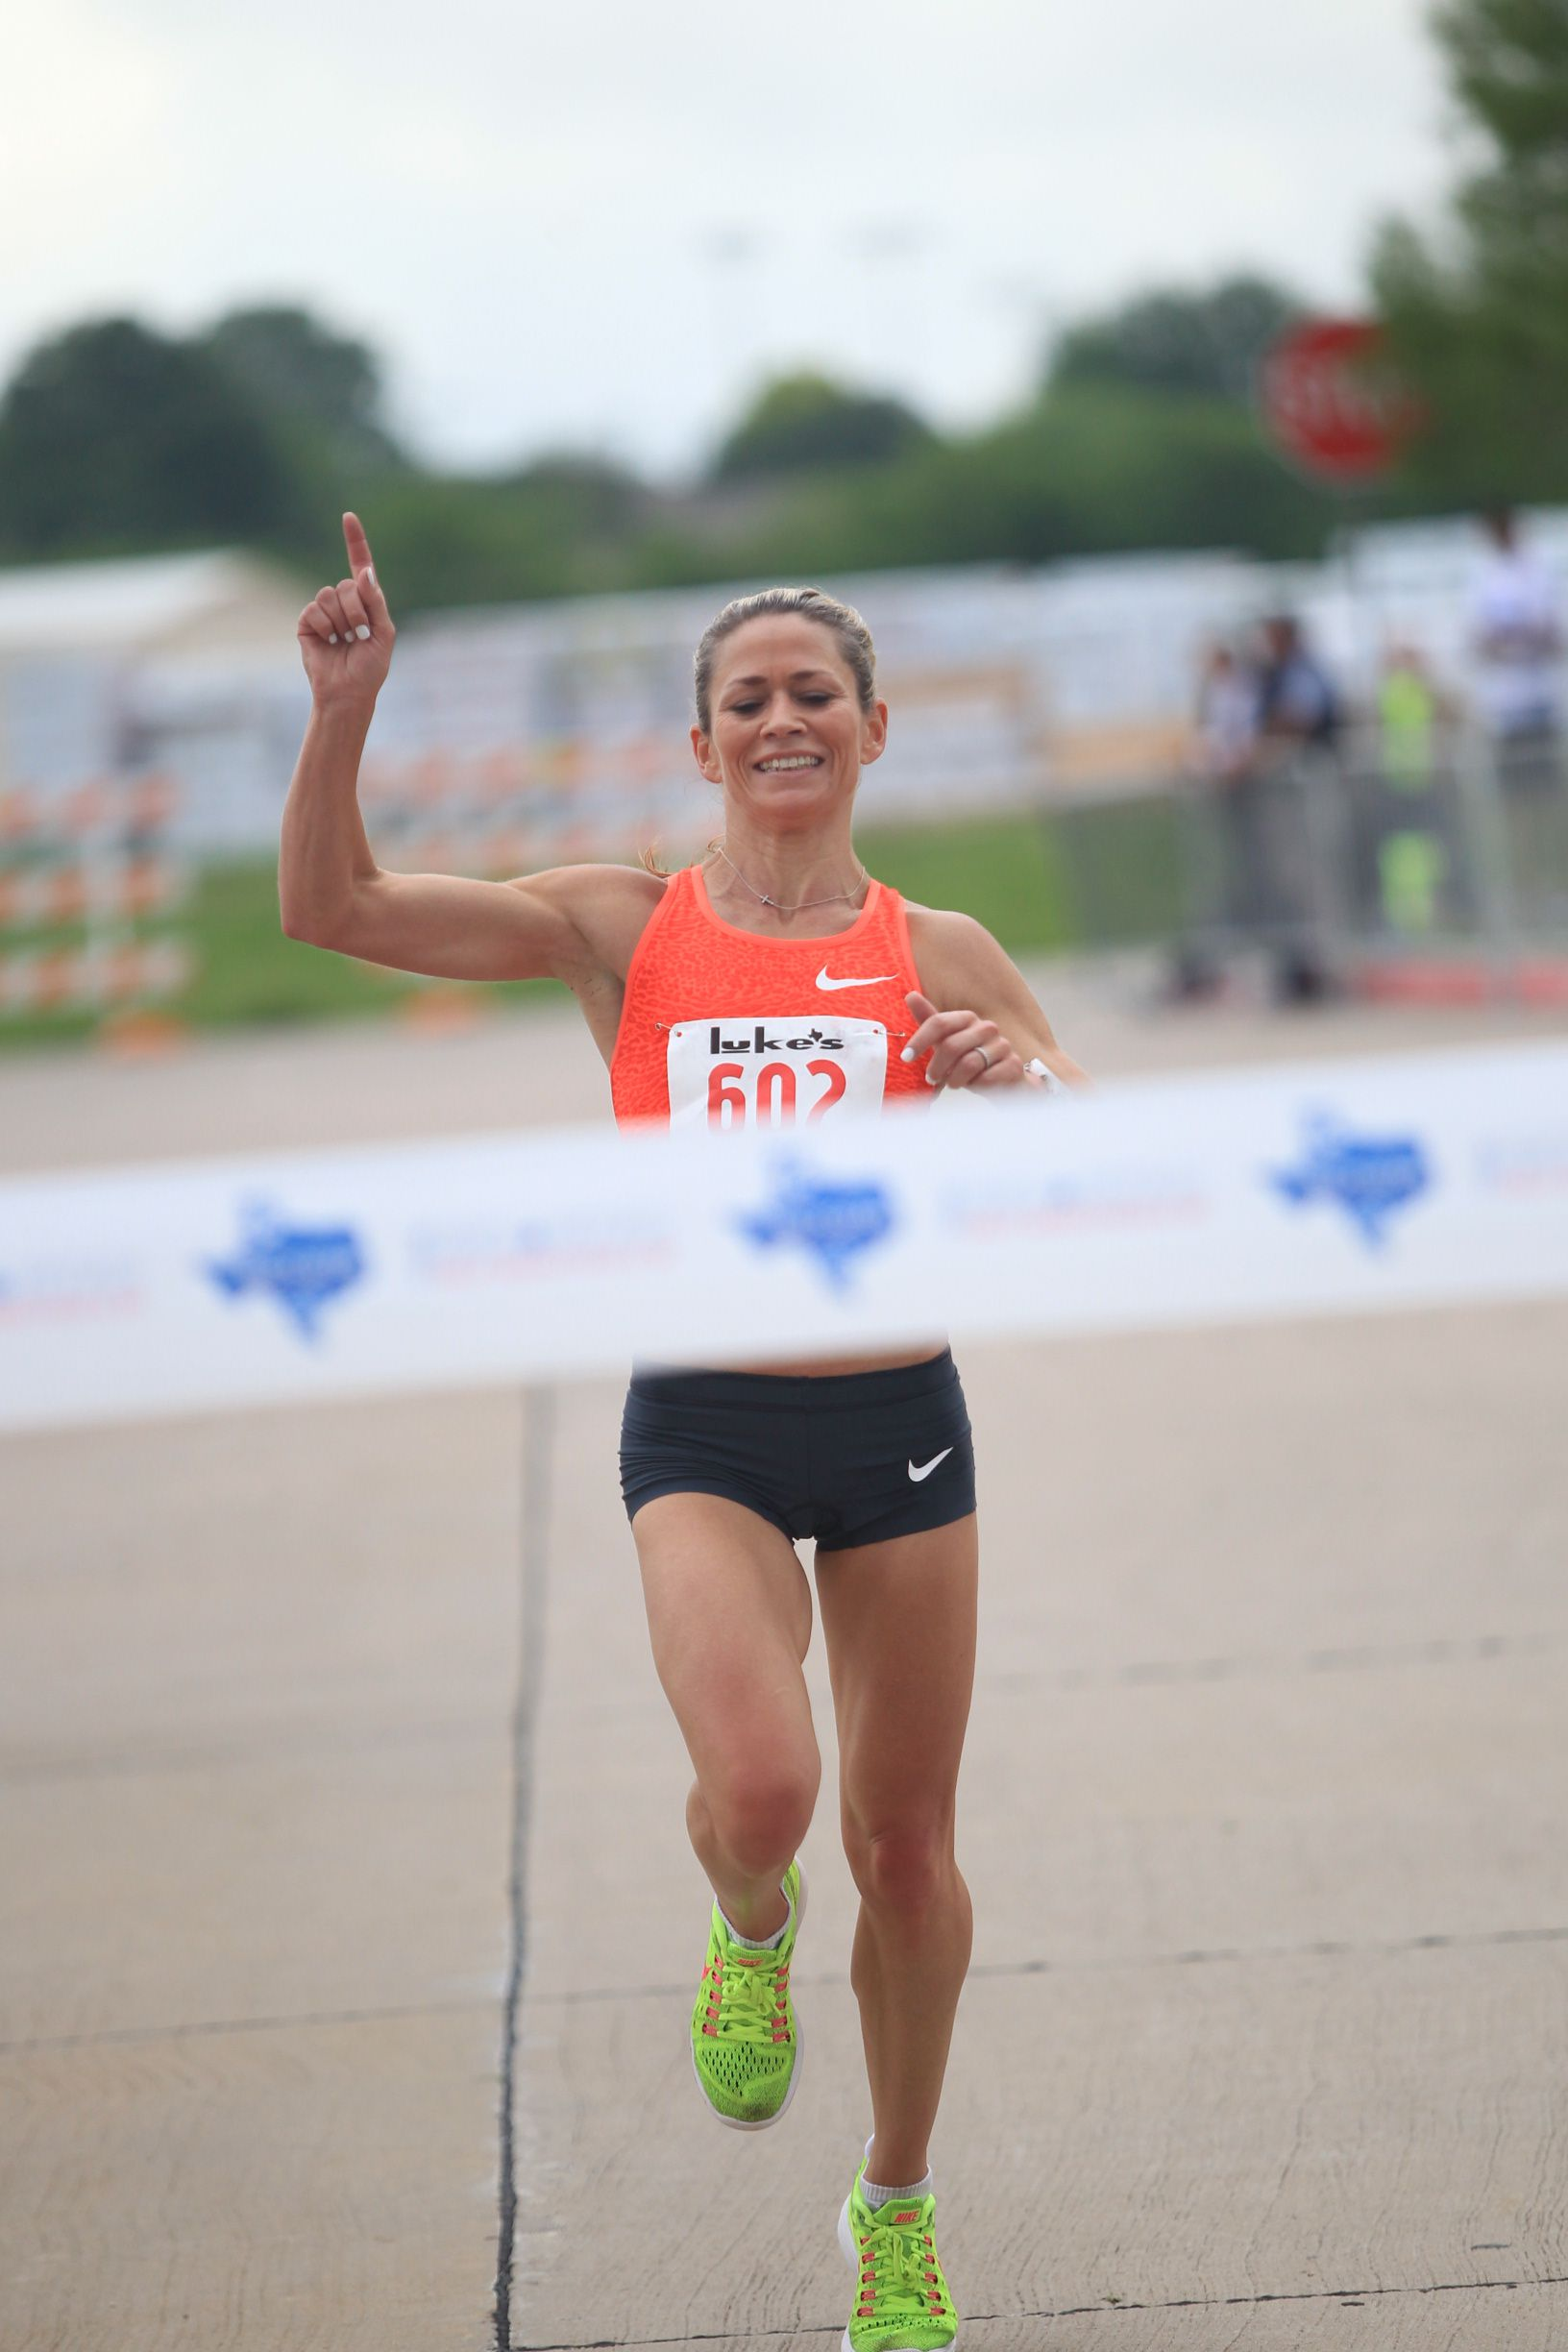 Dawn Grunnagle winning the inaugural Texas Big Star Half Marathon last year.